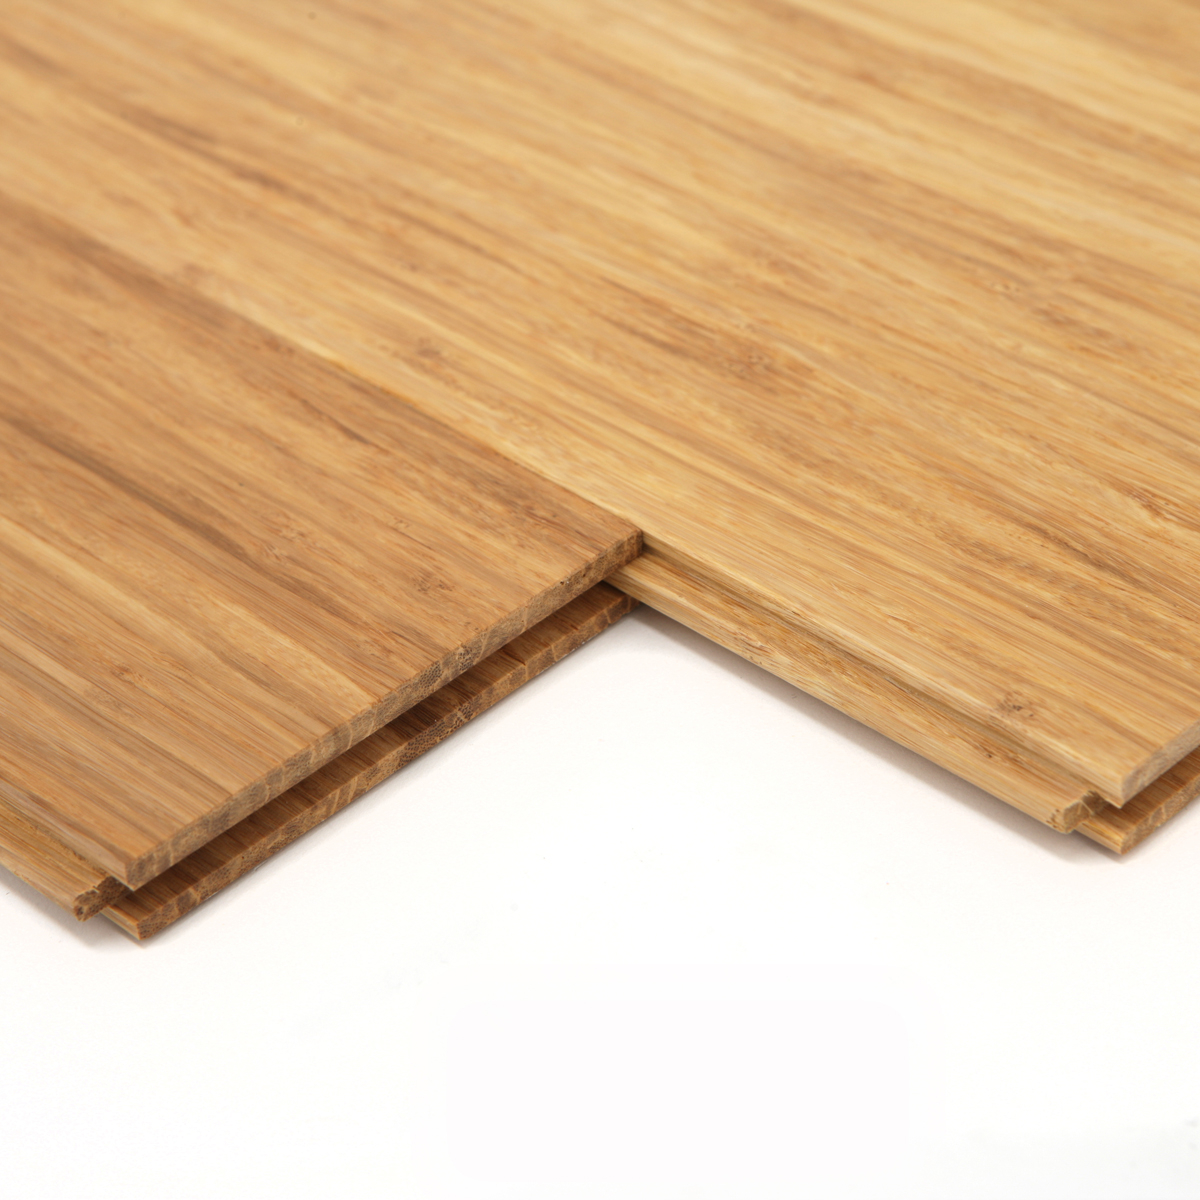 Le Parquet bambou naturel vertical horizontal ou